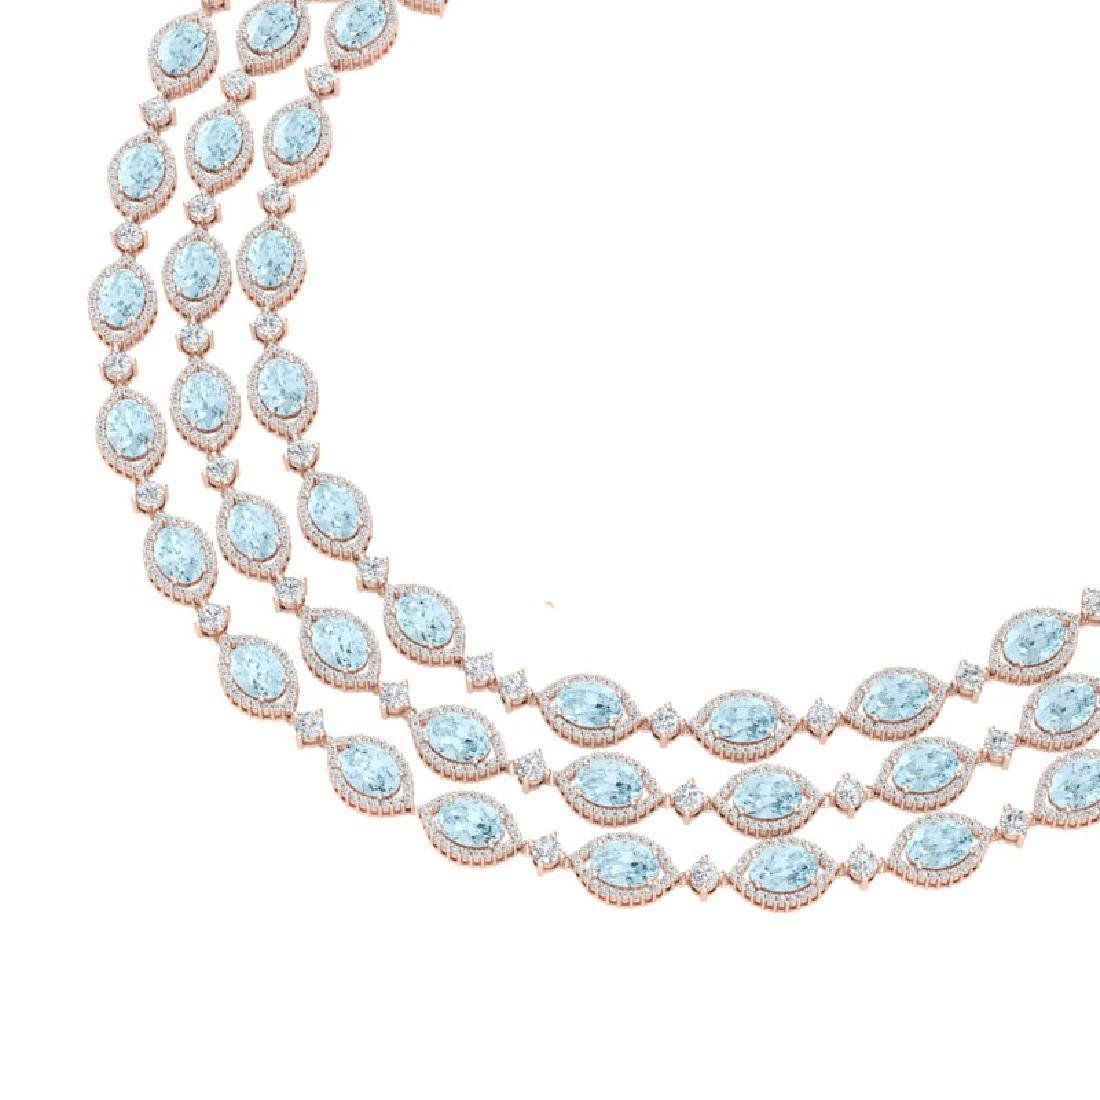 84.57 CTW Royalty Sky Topaz & VS Diamond Necklace 18K